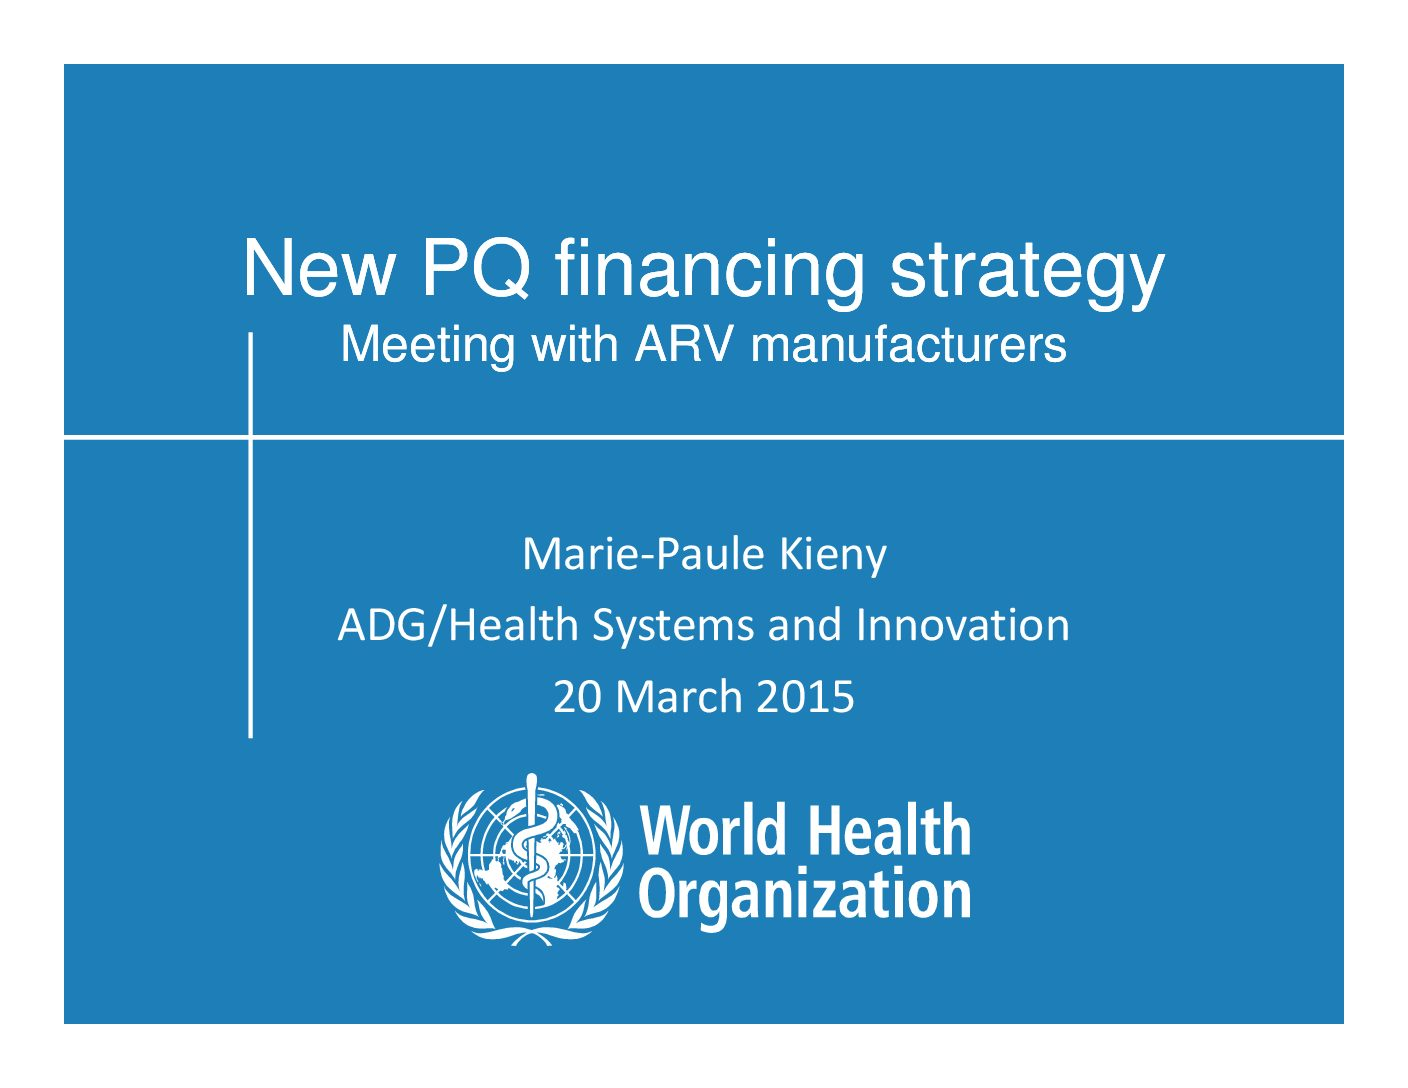 New PQ financing strategy. Meeting with ARV manufacturers.